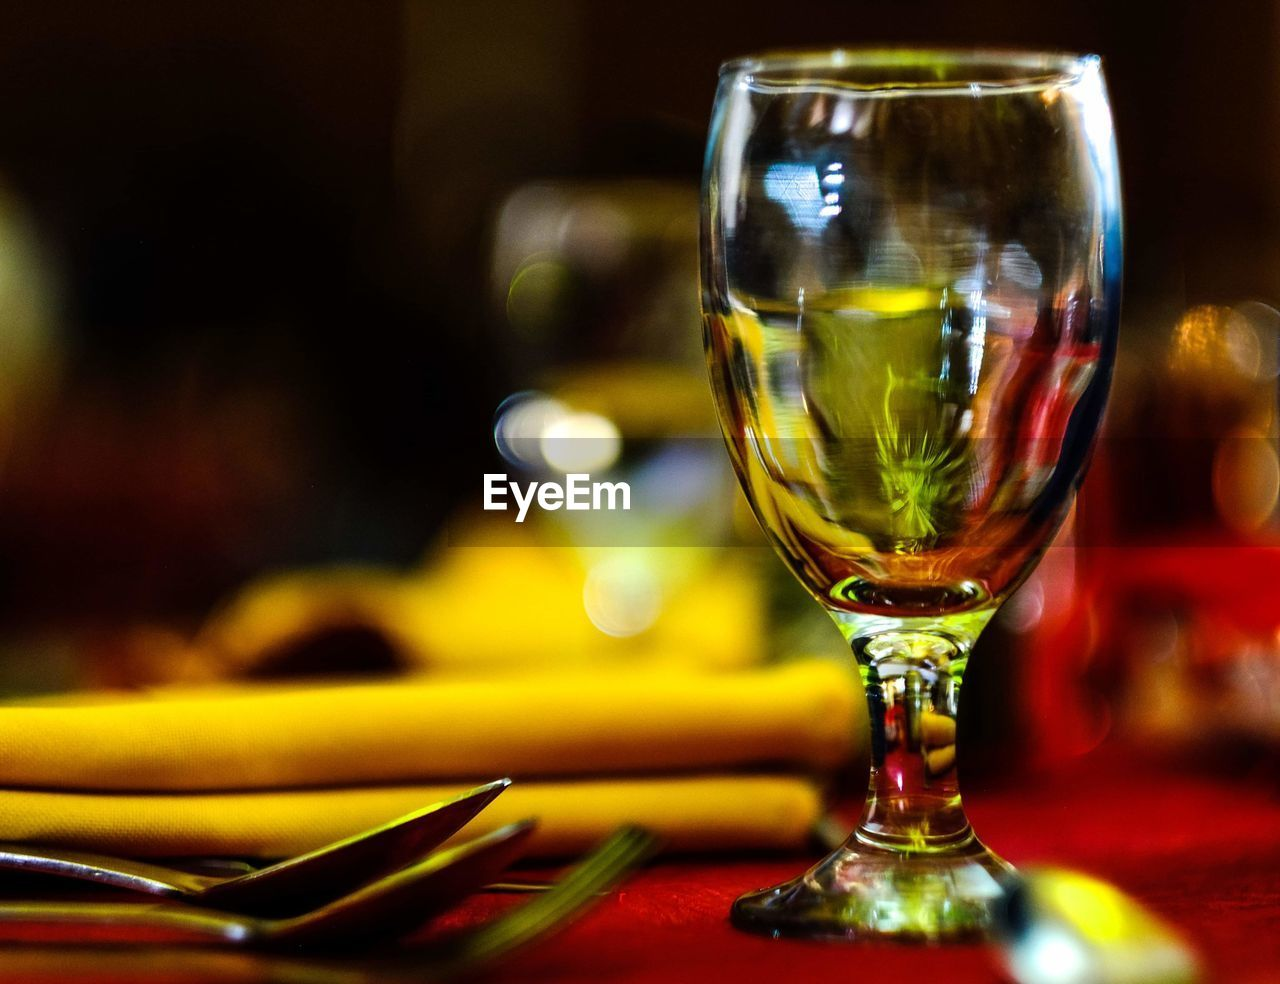 glass, refreshment, food and drink, focus on foreground, table, close-up, drinking glass, drink, household equipment, no people, glass - material, transparent, still life, indoors, wineglass, alcohol, freshness, selective focus, restaurant